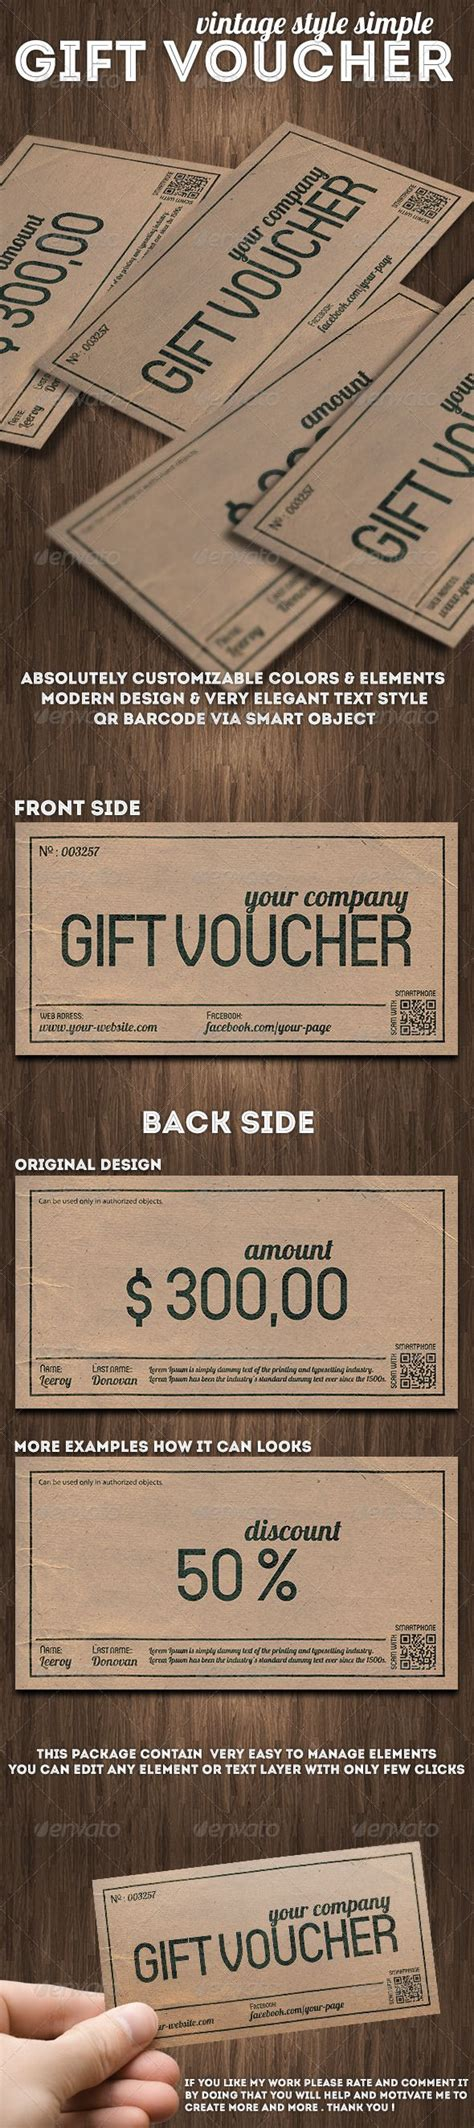 printable vouchers london vintage style gift voucher or discount coupon vintage